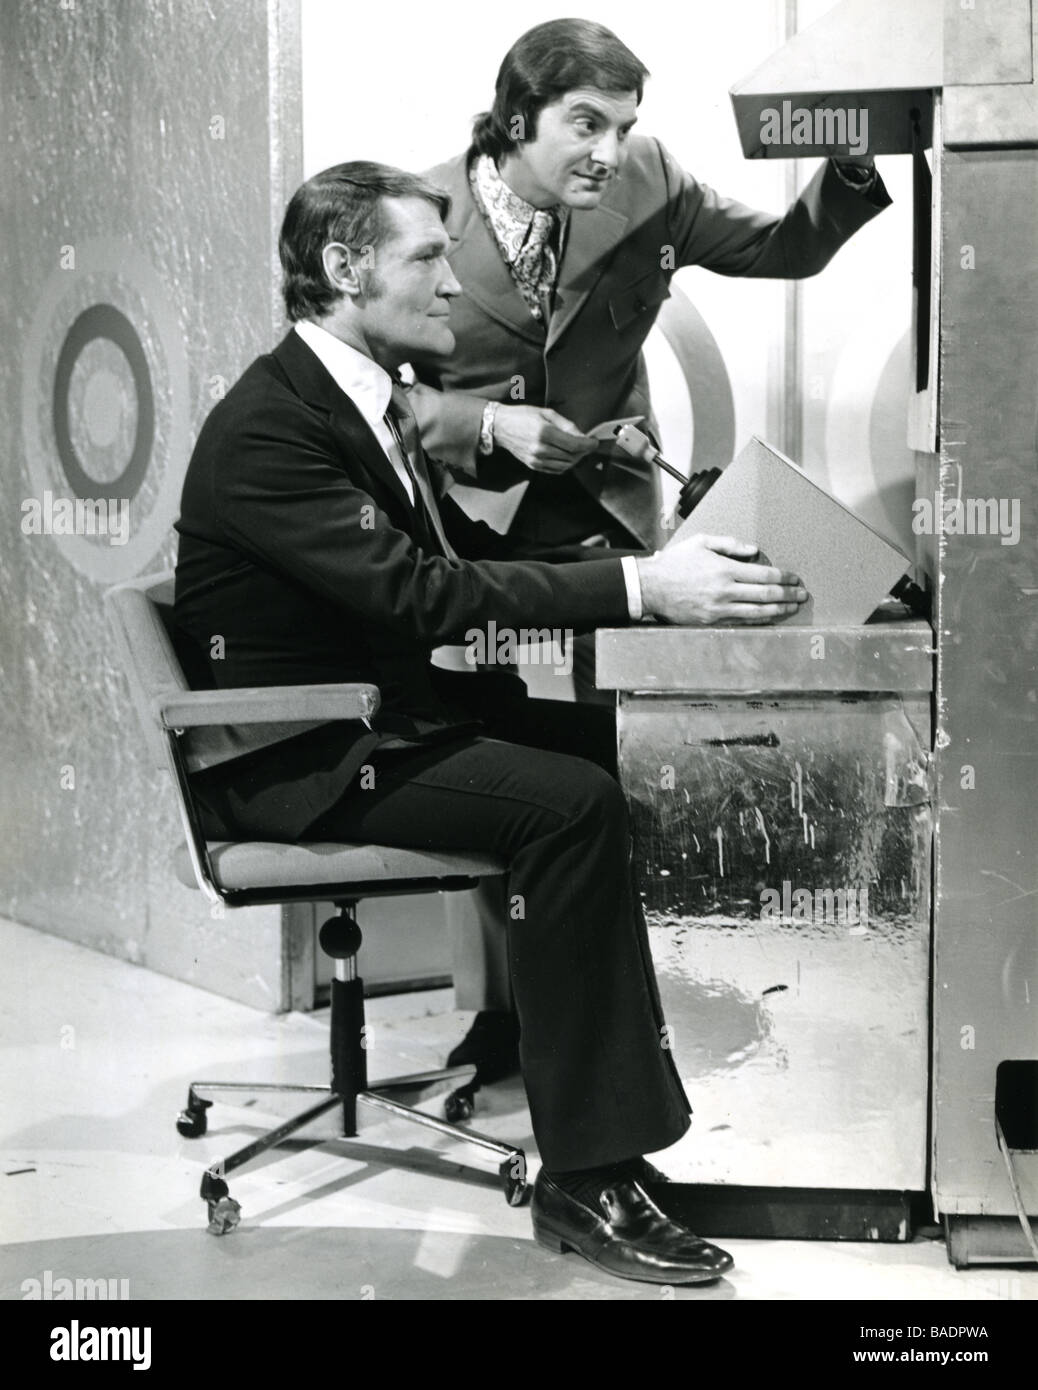 THE GOLDEN SHOT 1960s UK TV game show with compere Bob Monkhouse standing and actor Patrick Allan - Stock Image